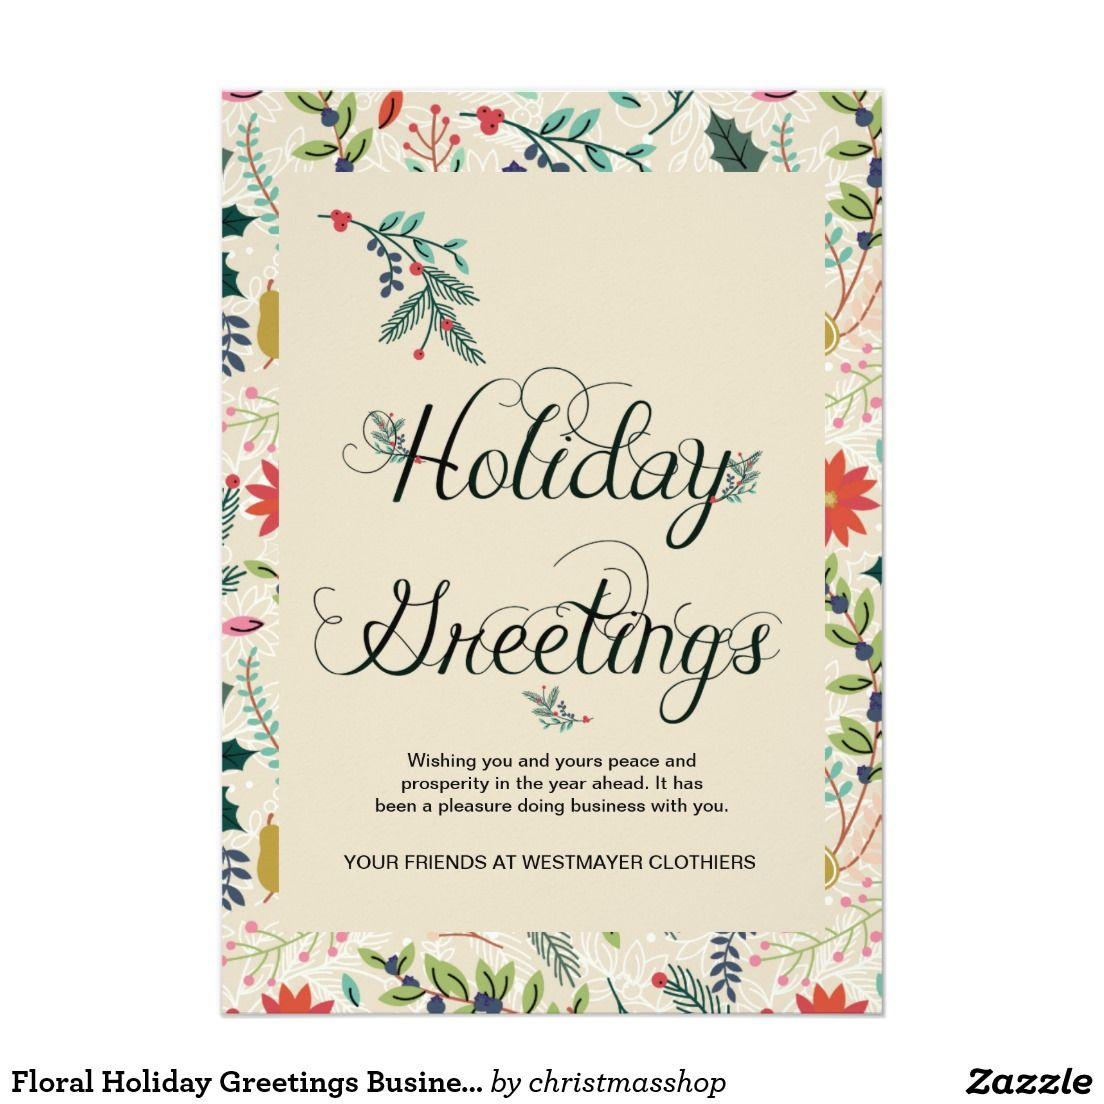 Floral Holiday Greetings Business Corporate Card Christmas Cards